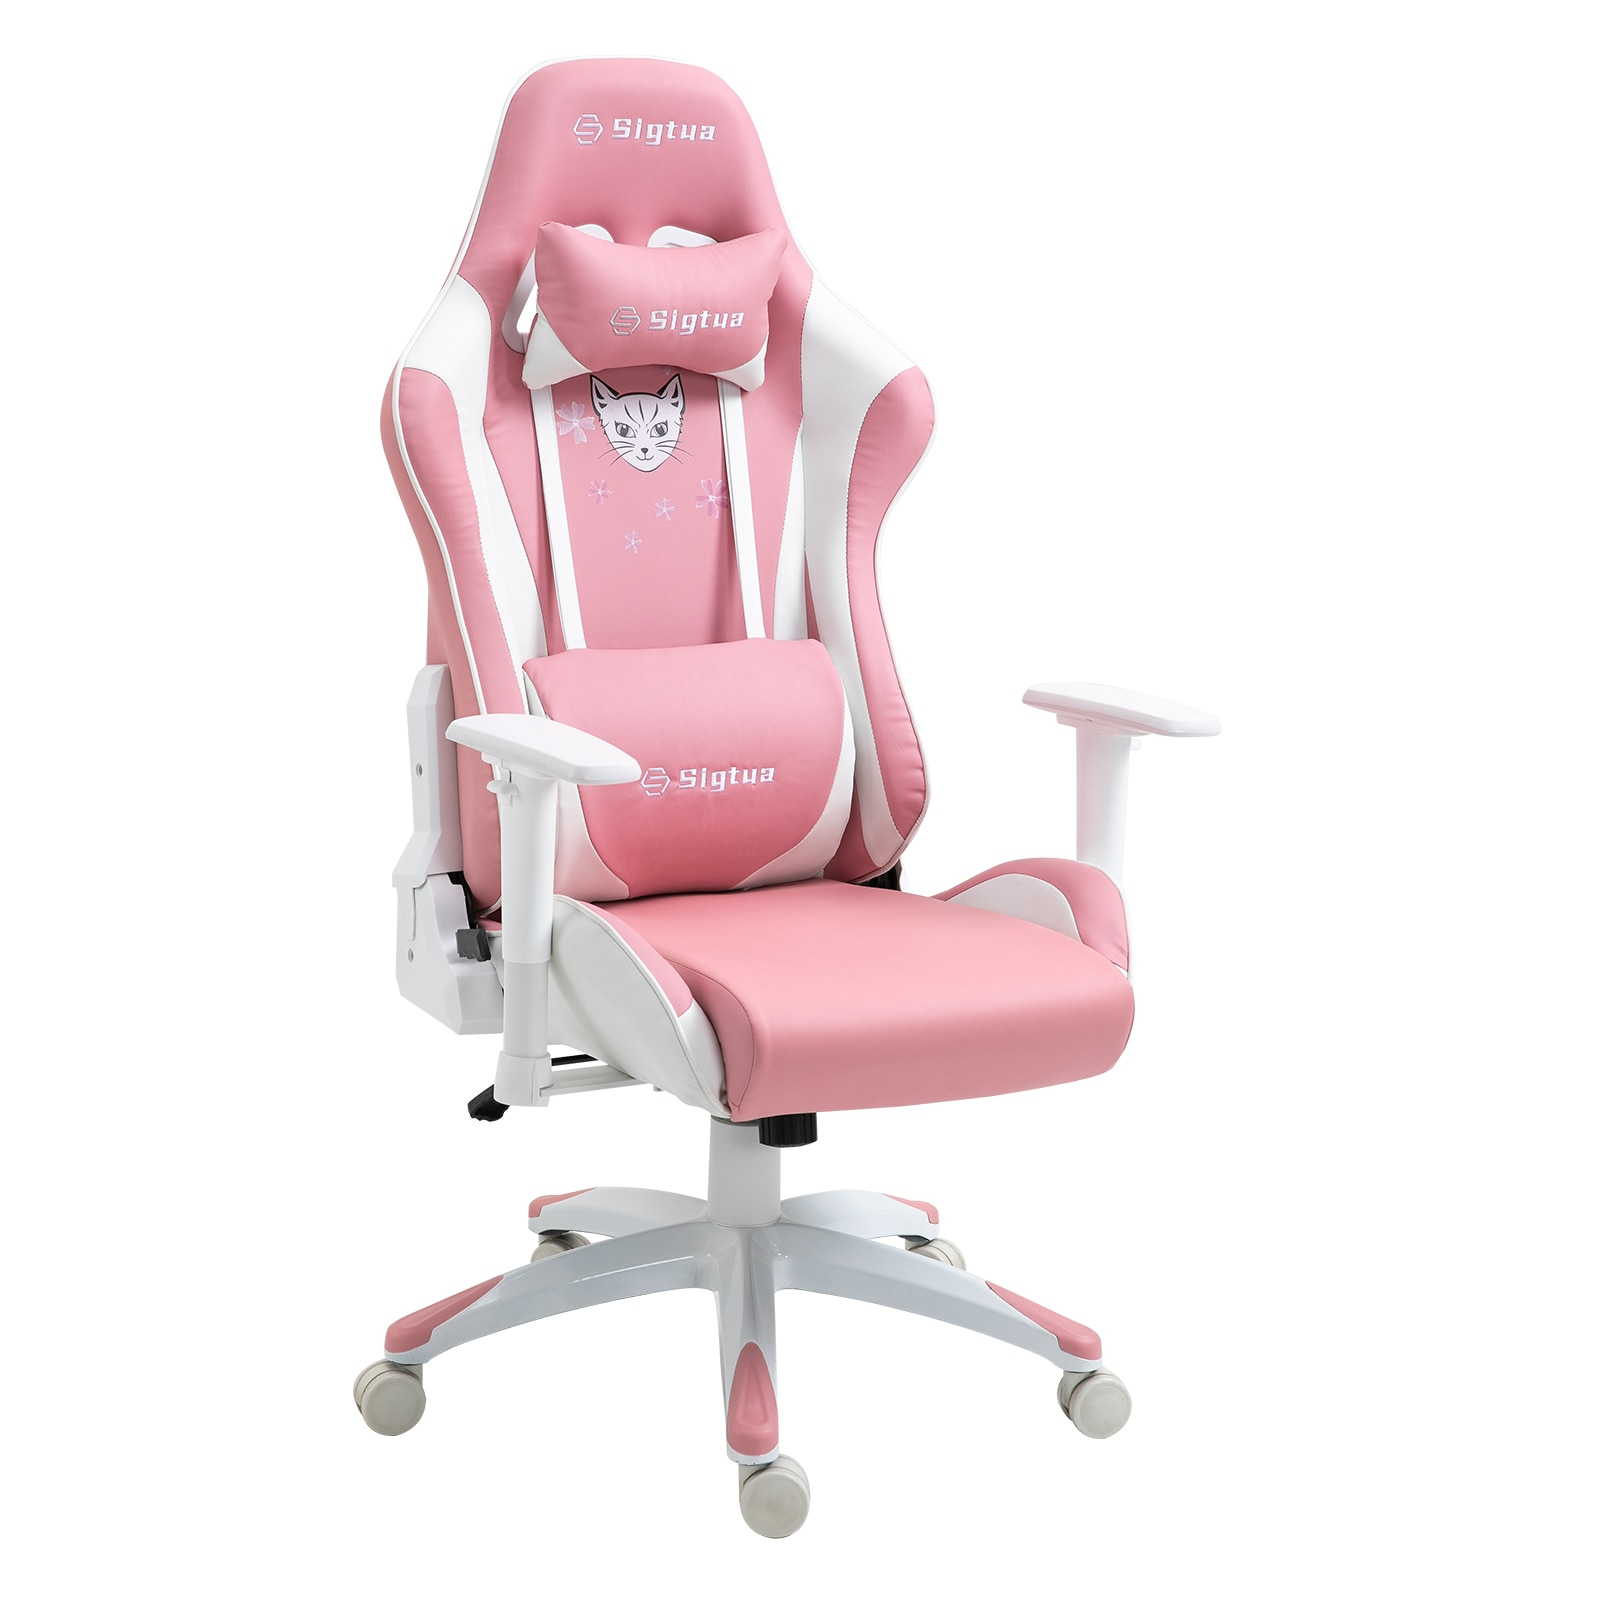 U86204076ae1c4b108fd154c9a810d696T - Sigtua Pink Gaming Office Chair Height-adjustable Armrests Computer Chair Ergonomic Swivel Executive Chair with High Backrest